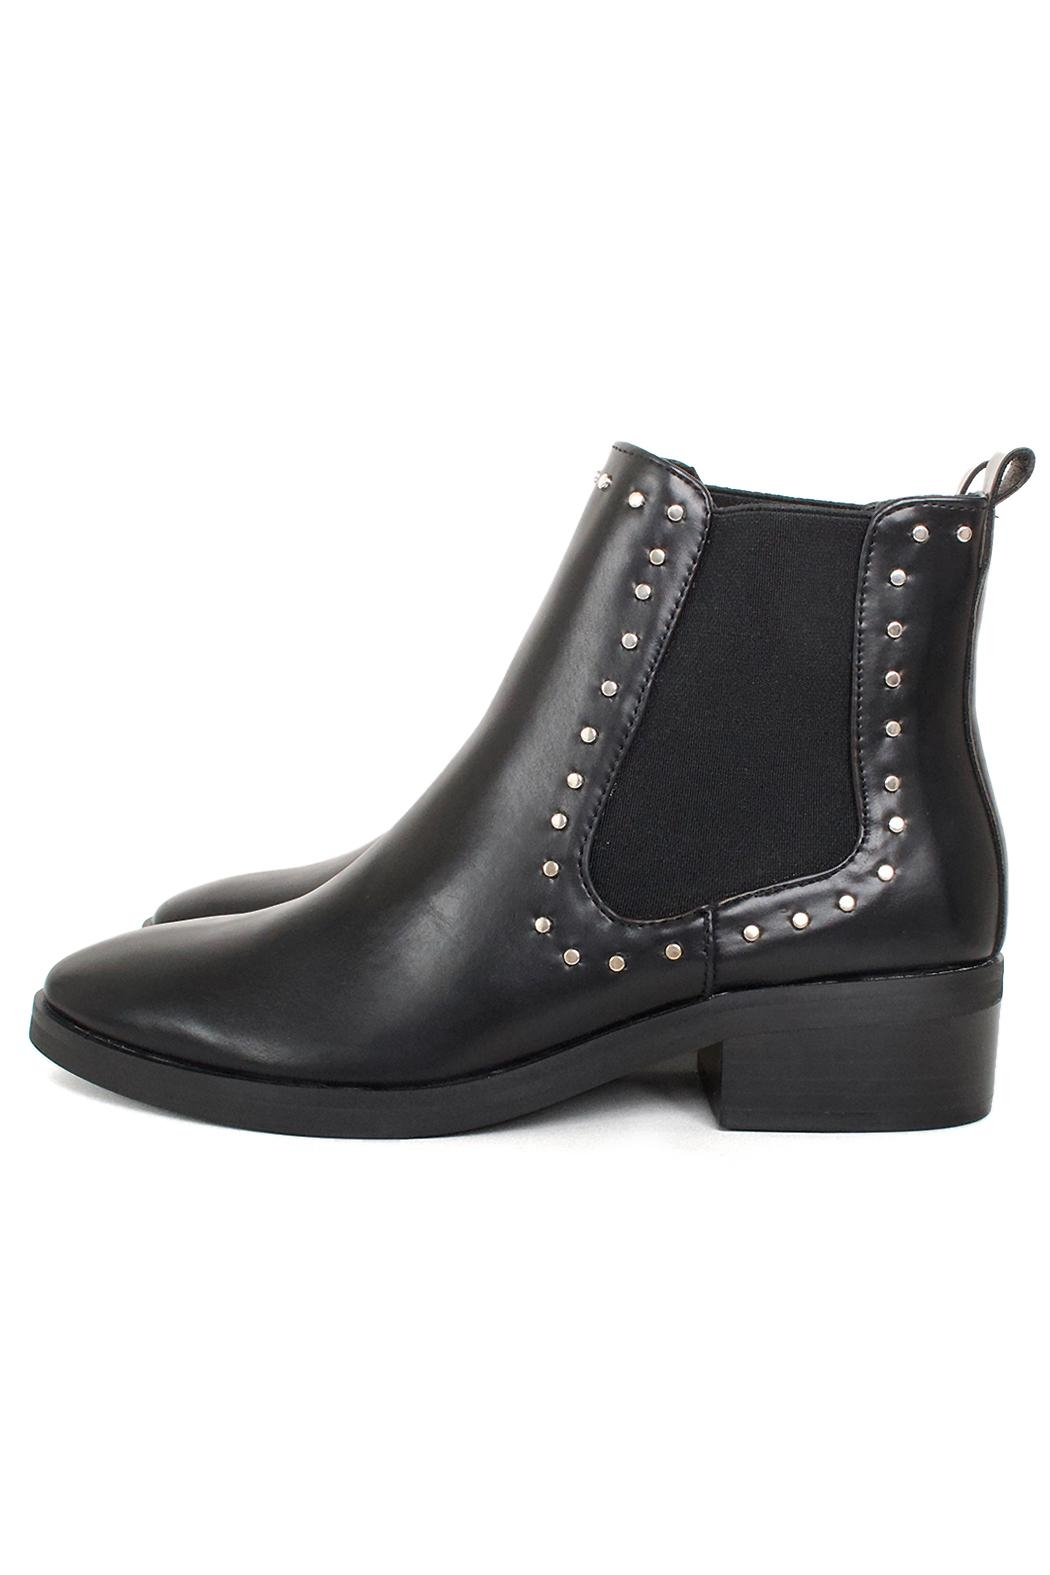 021af75a2e763 DV by Dolce Vita Vegan Studded Boots from Portland by Vintalier ...